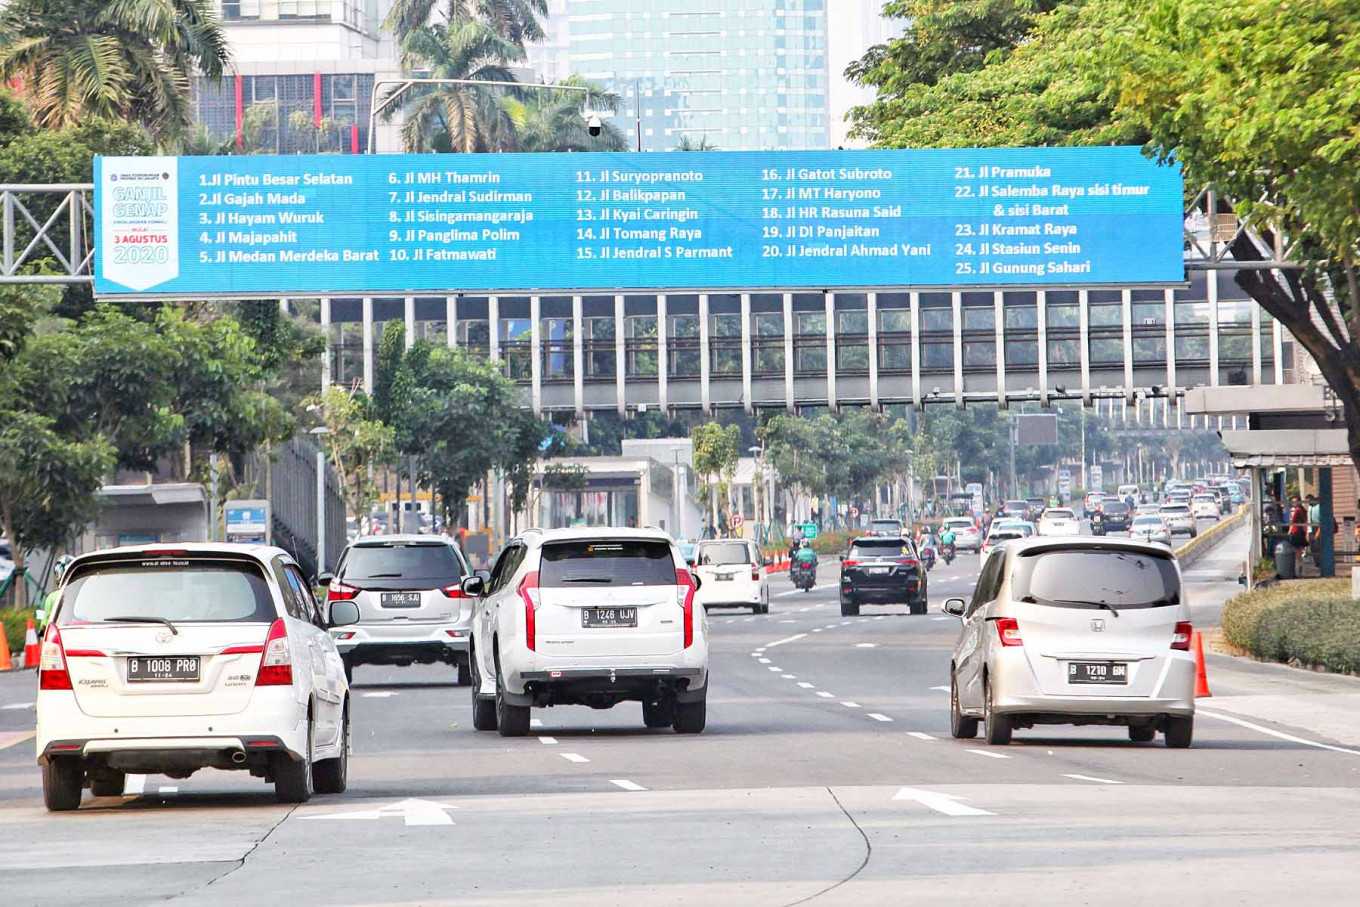 Jakarta to reevaluate odd-even policy after reports of COVID-19 clusters on public transportation